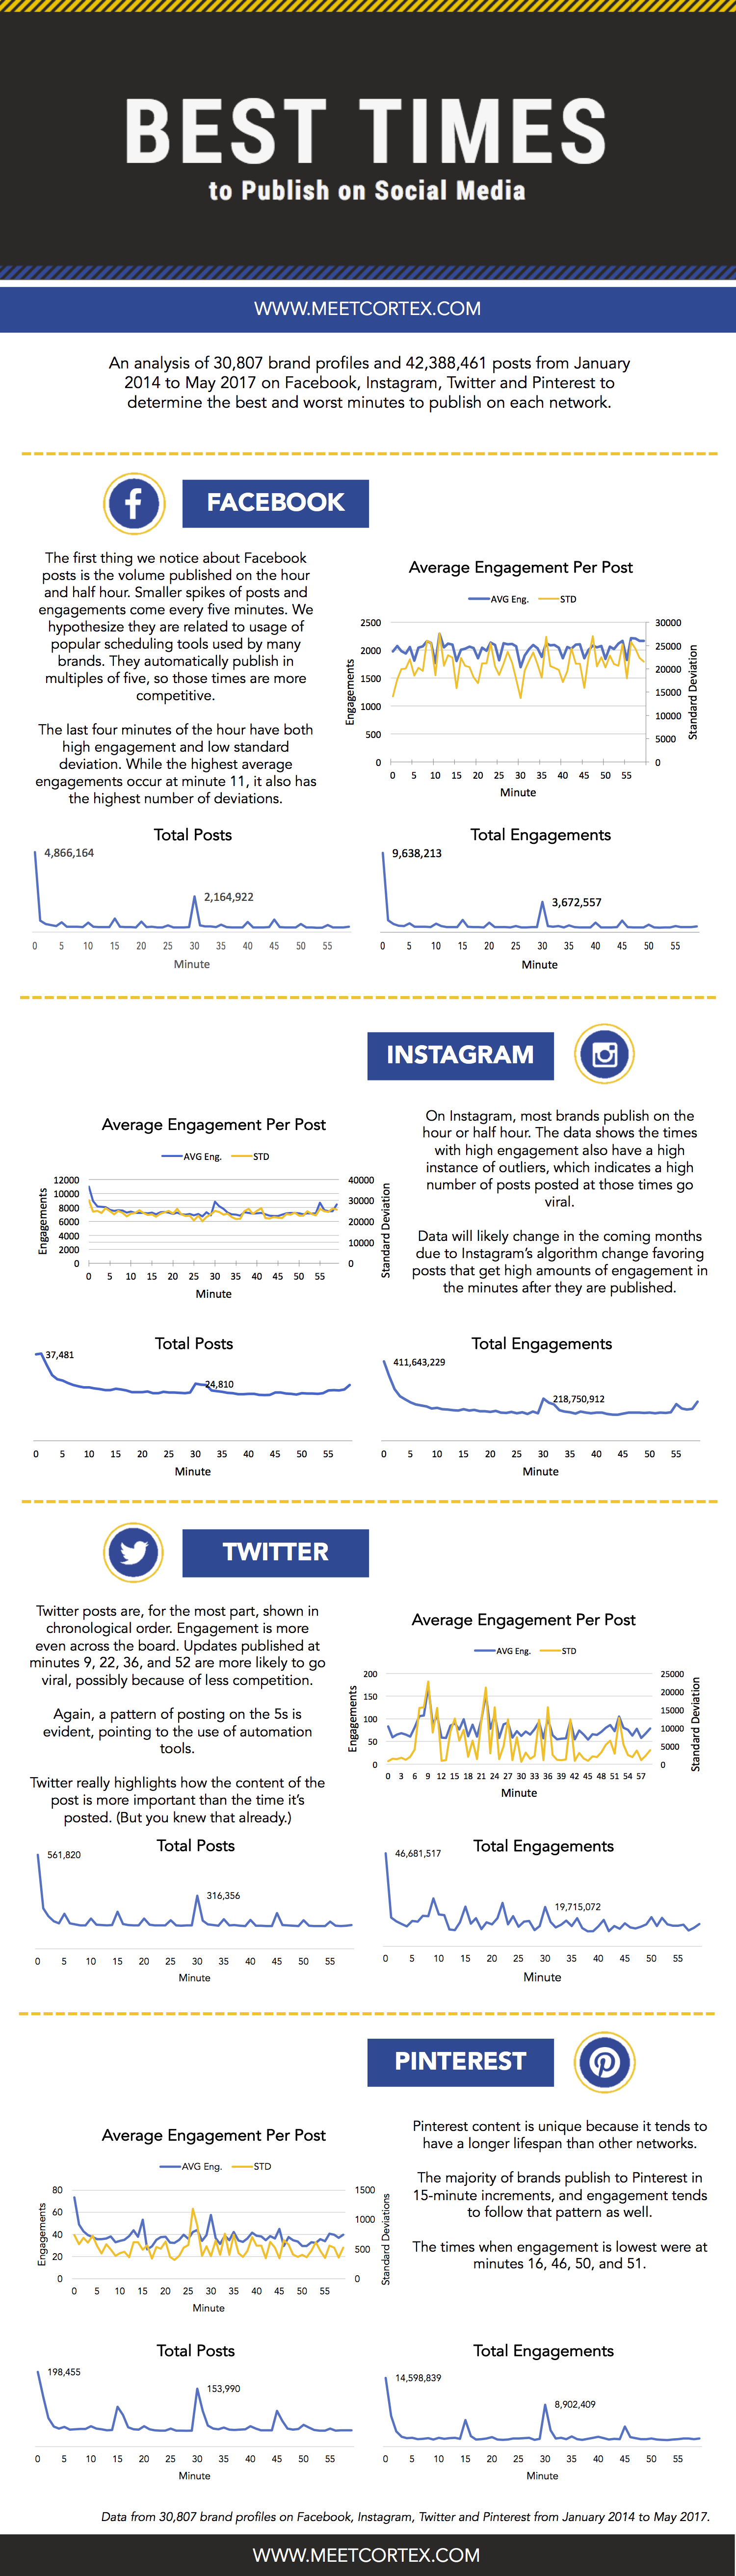 Best Time to Post on Social Media - 2017 Report